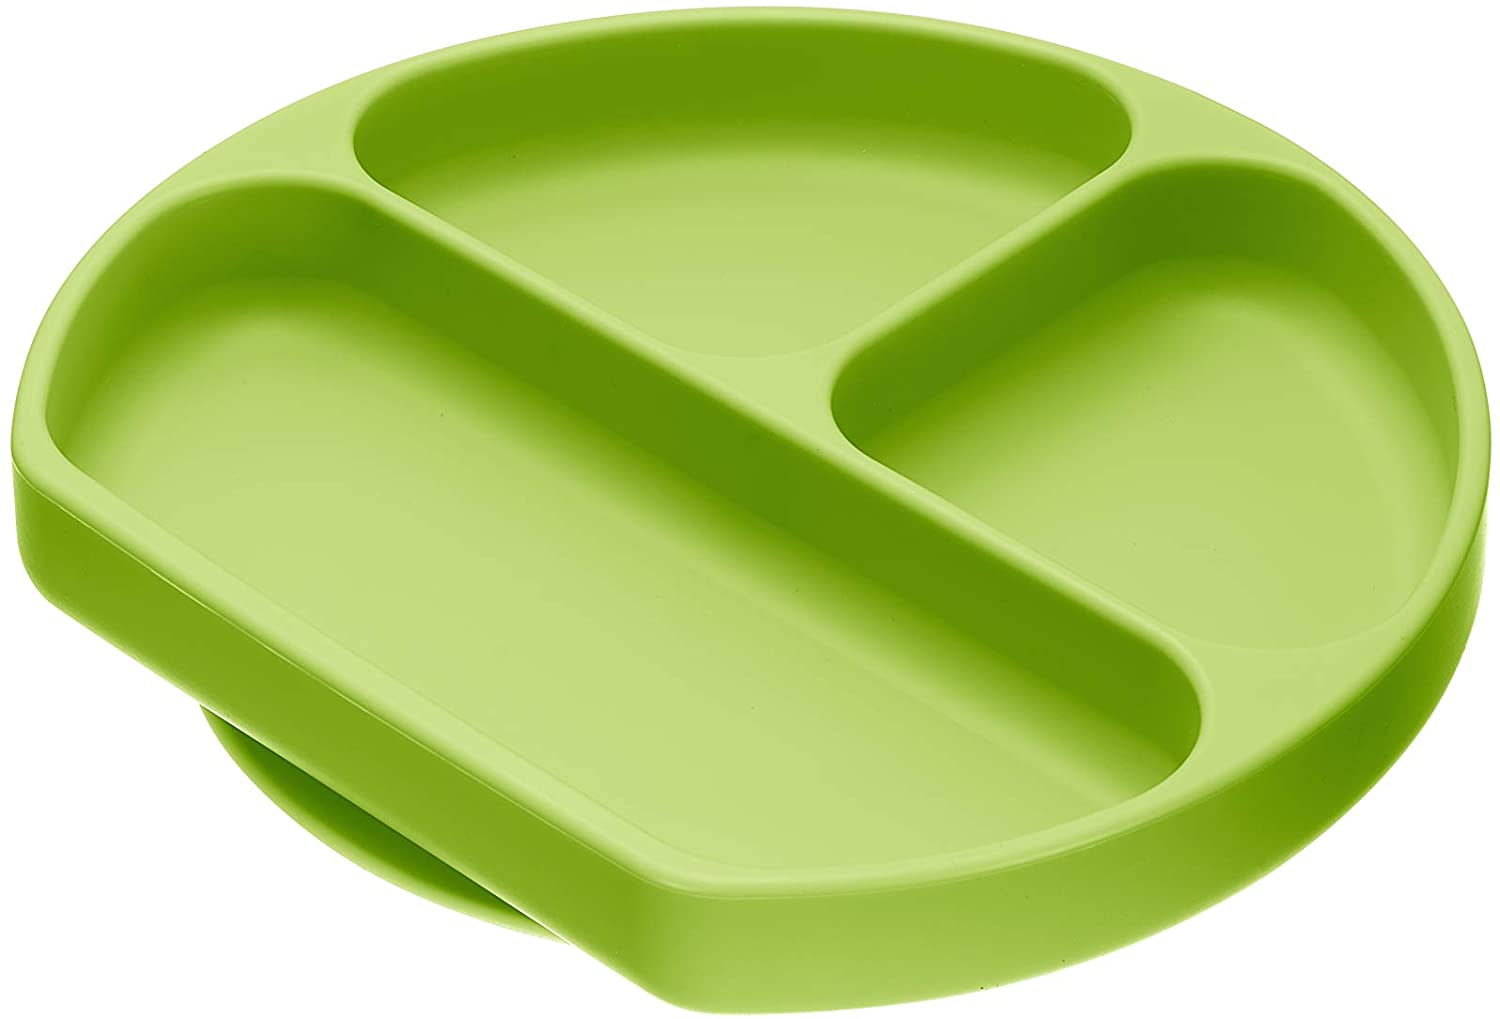 Sillyplates Silicone Grip Dish - Suction Baby Food Bowl for Placemat or Highchair Trays - Toddler Feeding Plate with 3 Portion Dividers for Picky Eaters - Microwave Oven & Dishwasher-Safe, (Green)